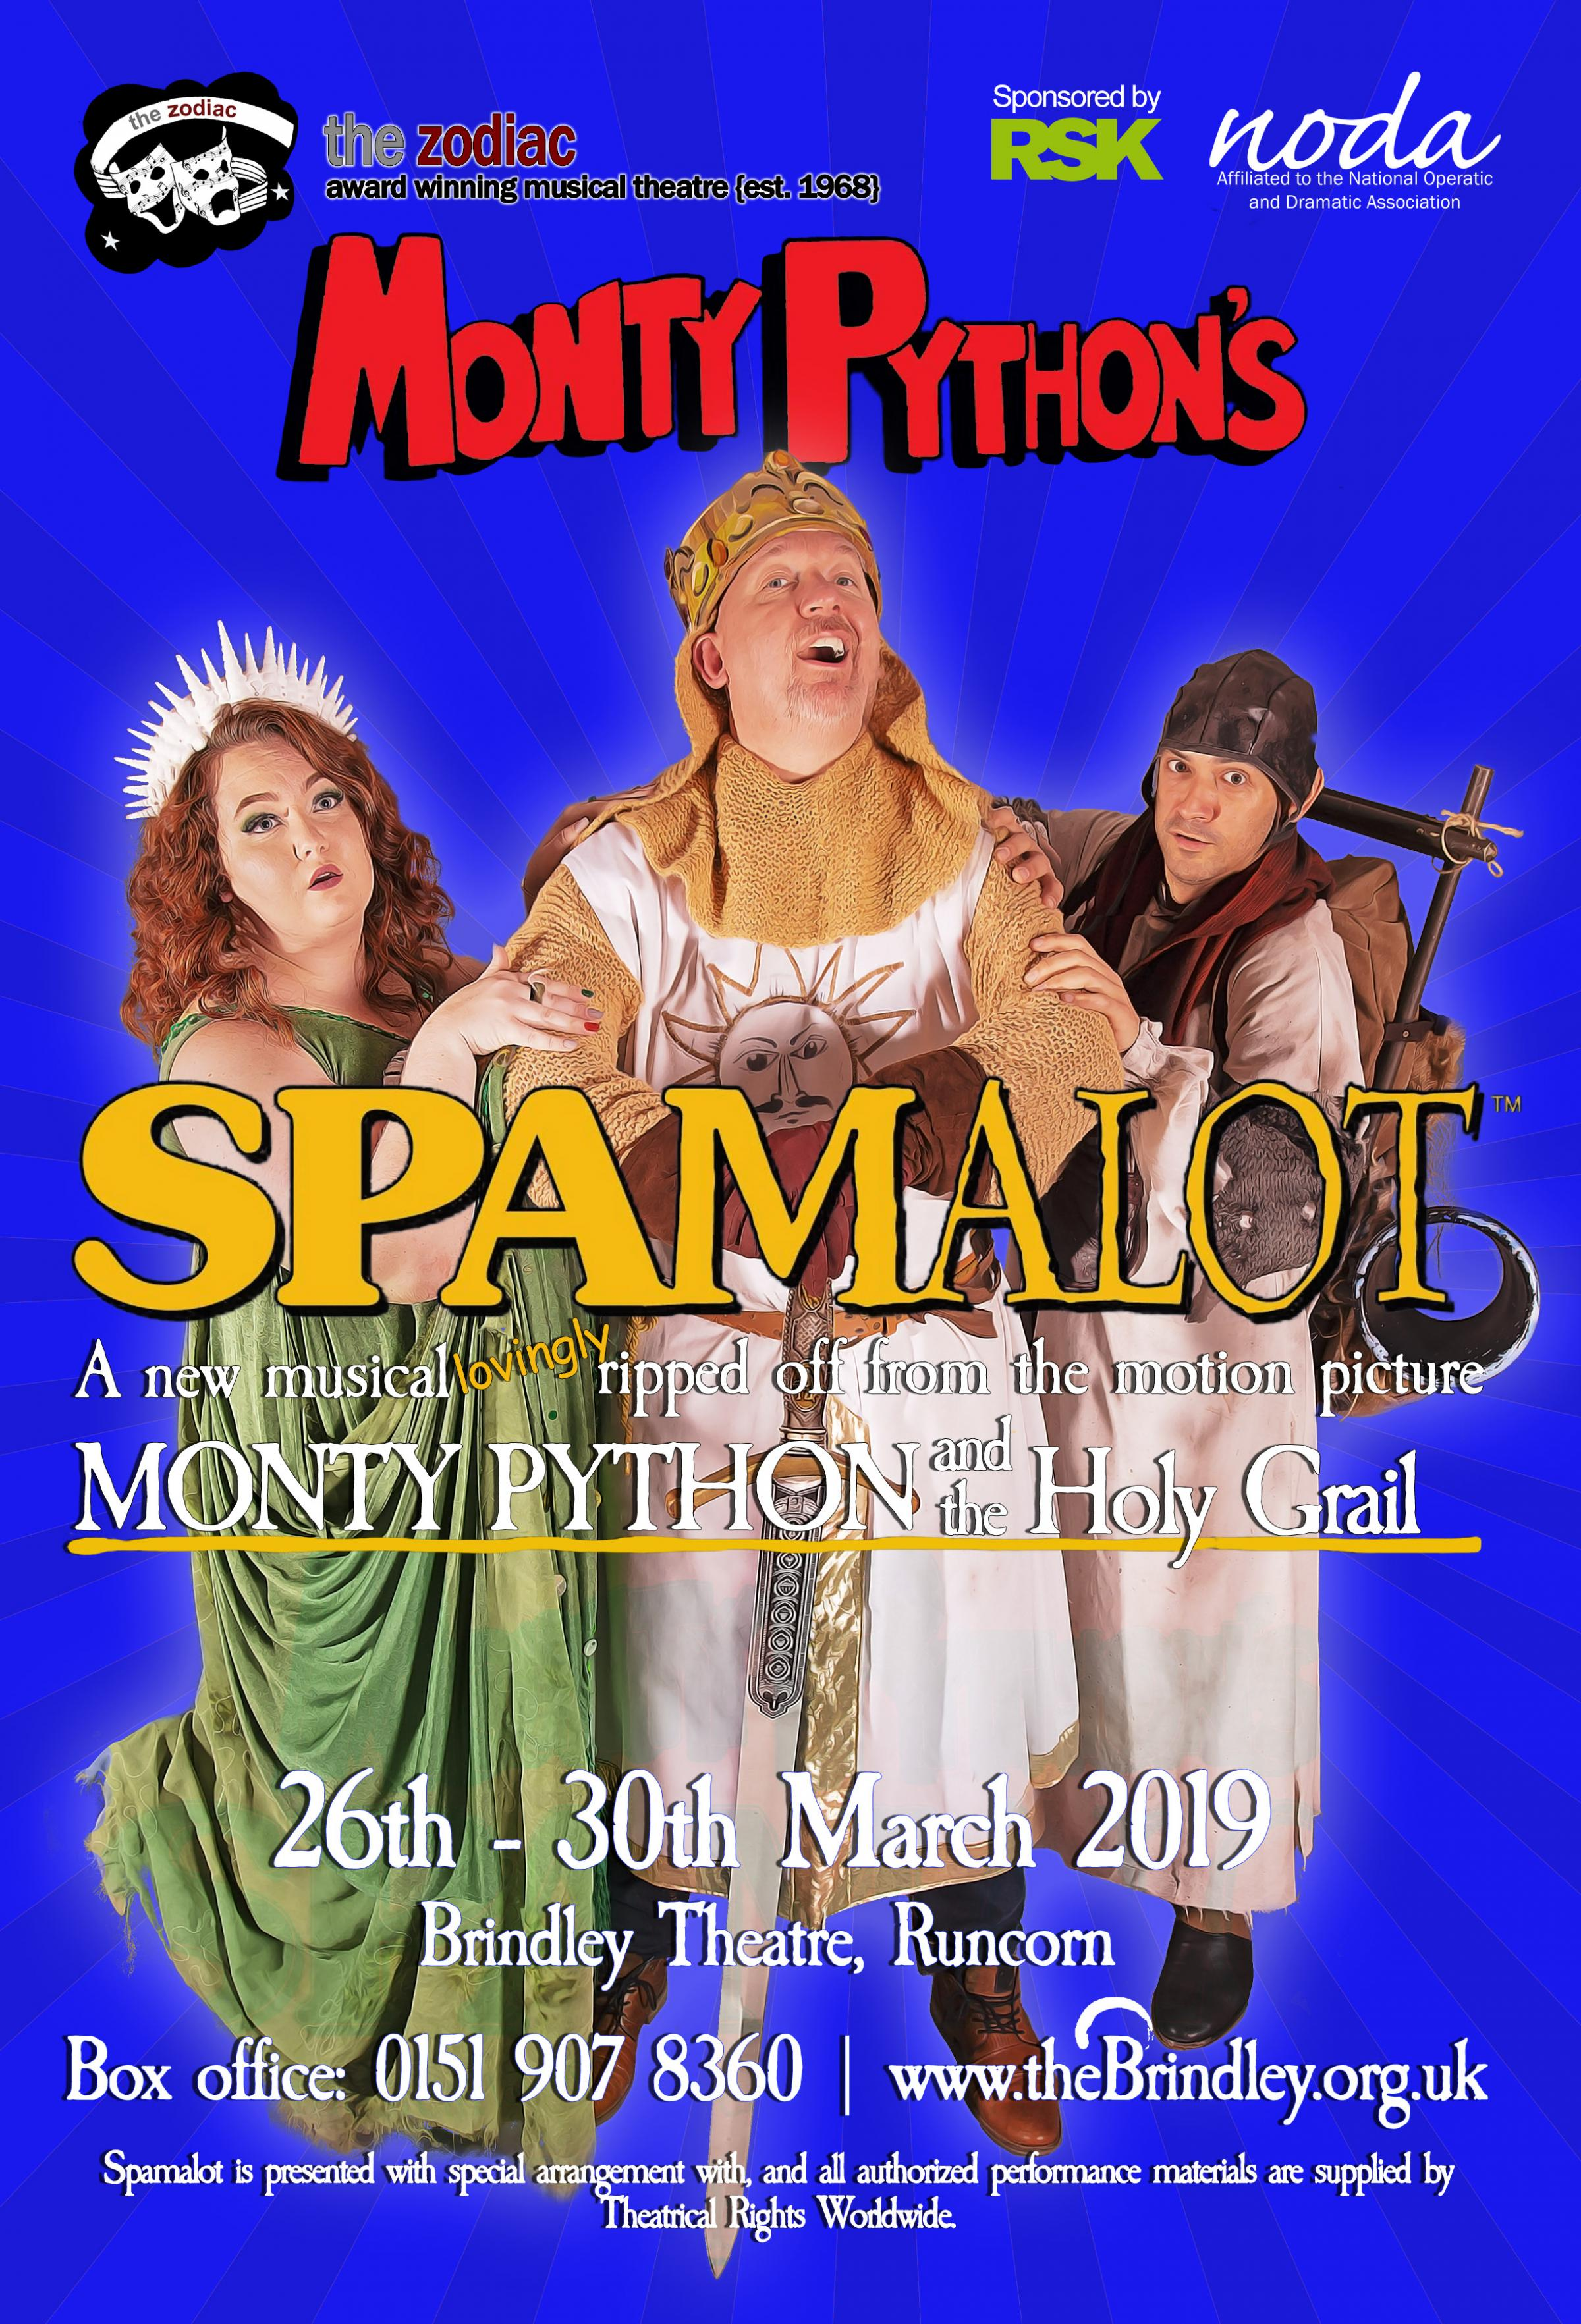 Monty Python's Spamalot The Musical